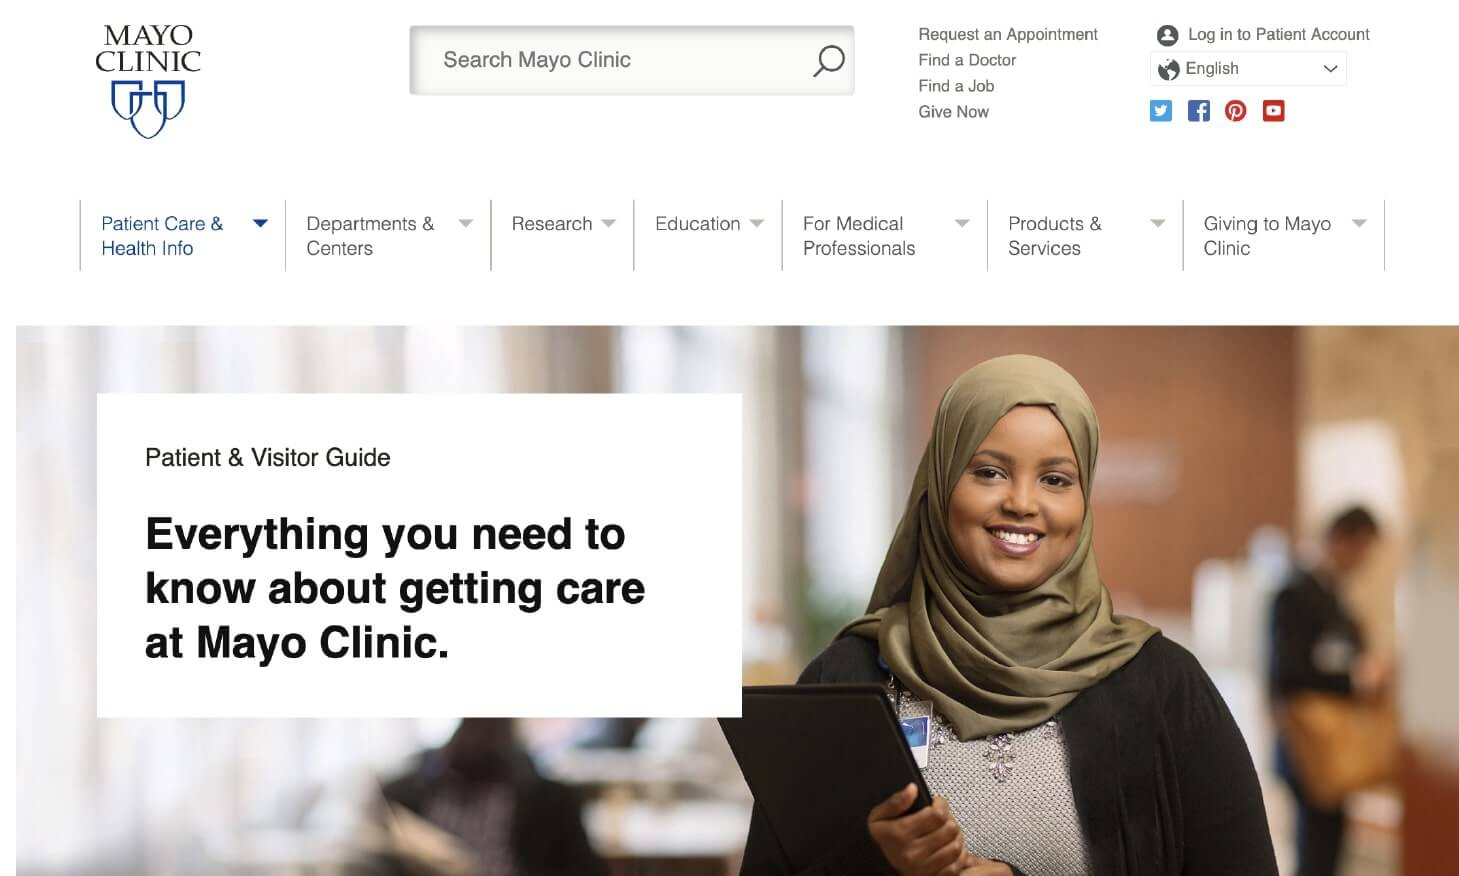 Example of Using Customer Self-Service by Mayo Clinic